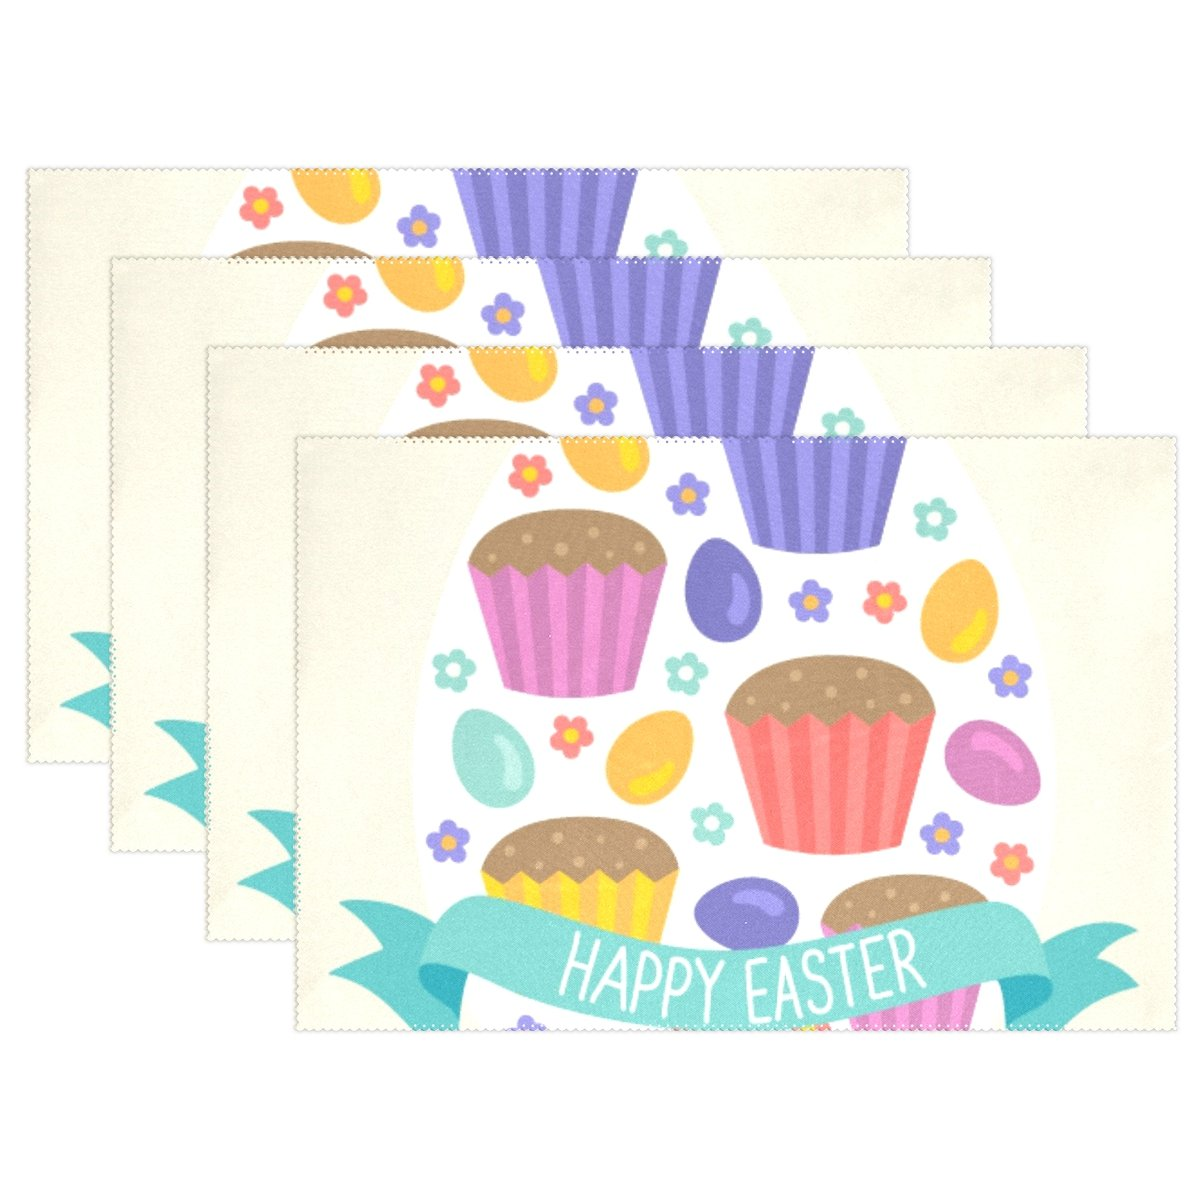 4pcs Happy Easter Rabbiteプレースマット – 12 x 18in – Washable Heat Crease Resistant Printed Place Mat forキッチンディナーテーブルby Top Carpenter 18 x 12 in Tablemattt-0221D-405 18 x 12 in Pattern 05 B079YZV316